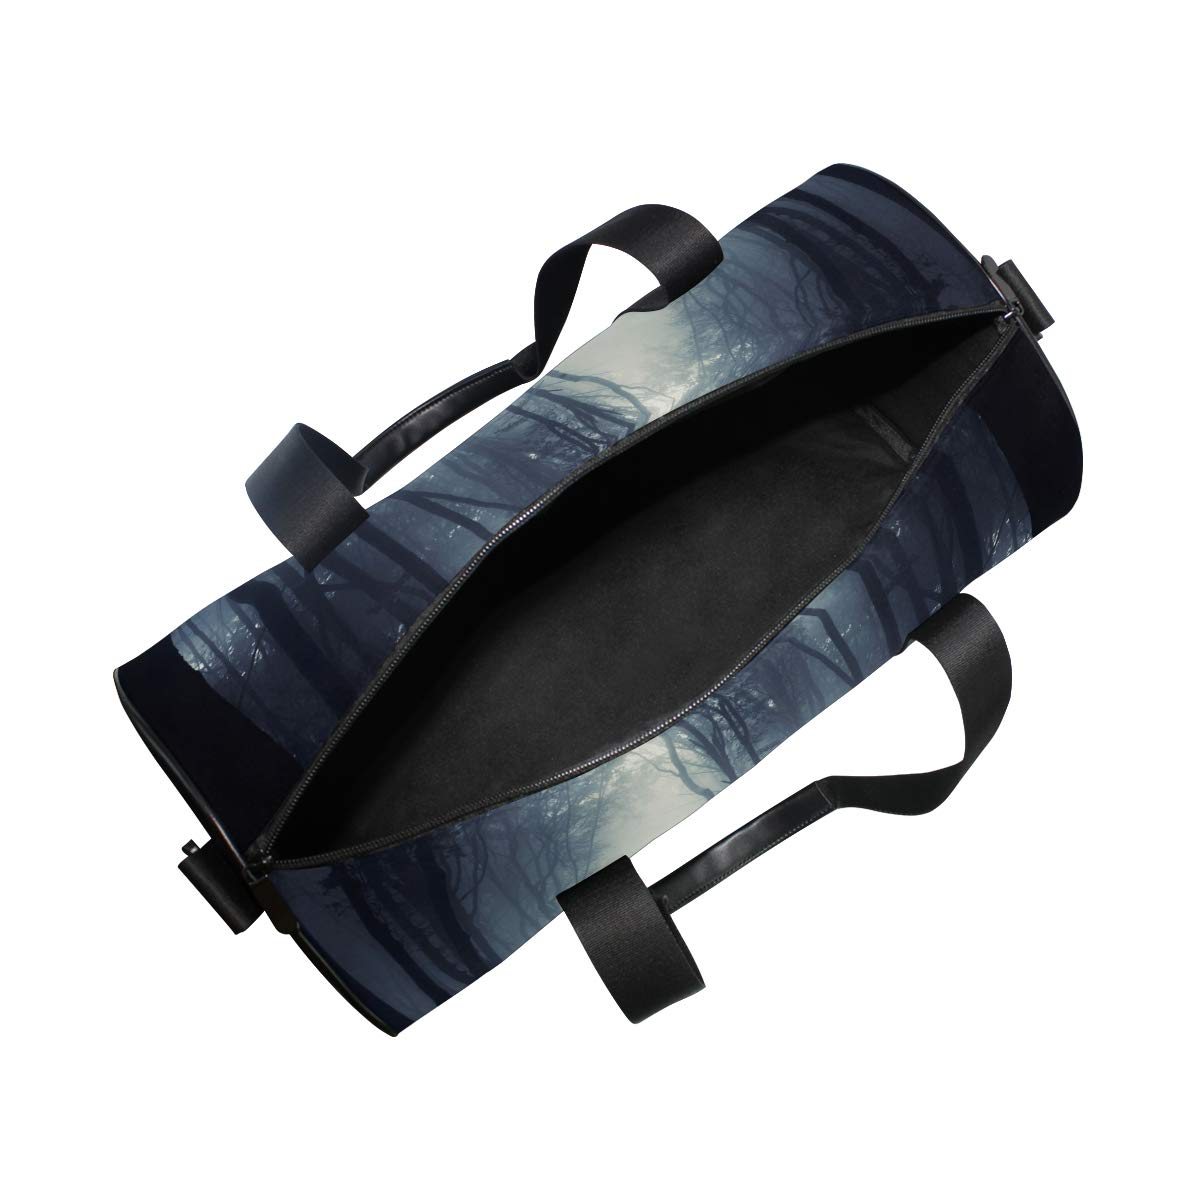 Sports Gym Bag Travel Duffel Bag with Pockets Luggage & Travel Gear Shoulder Strap Fitness Bag by EVERUI (Image #5)